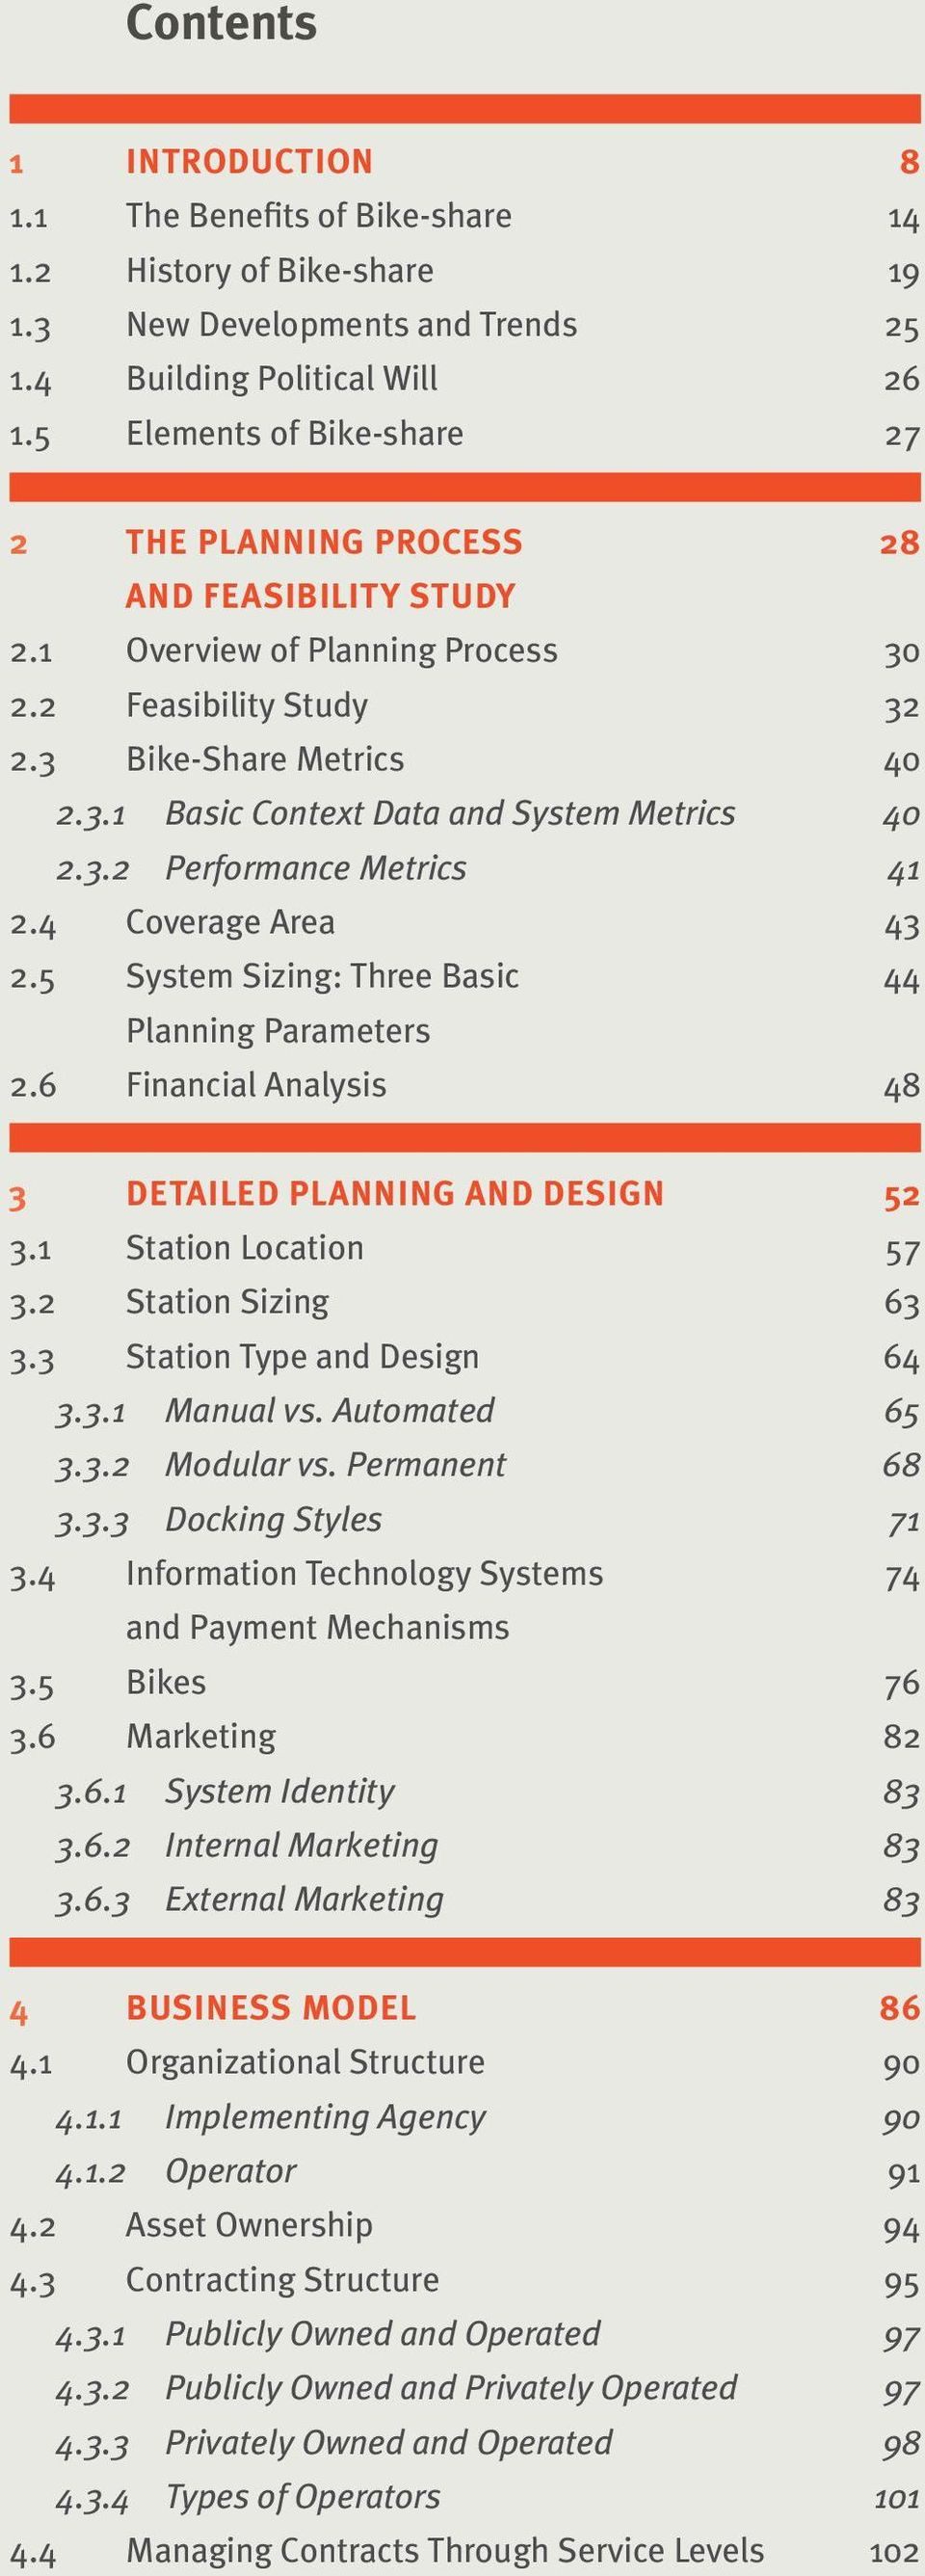 3.2 Performance Metrics 41 2.4 Coverage Area 43 2.5 System Sizing: Three Basic 44 Planning Parameters 2.6 Financial Analysis 48 3 DETAILED PLANNING AND DESIGN 52 3.1 Station Location 57 3.